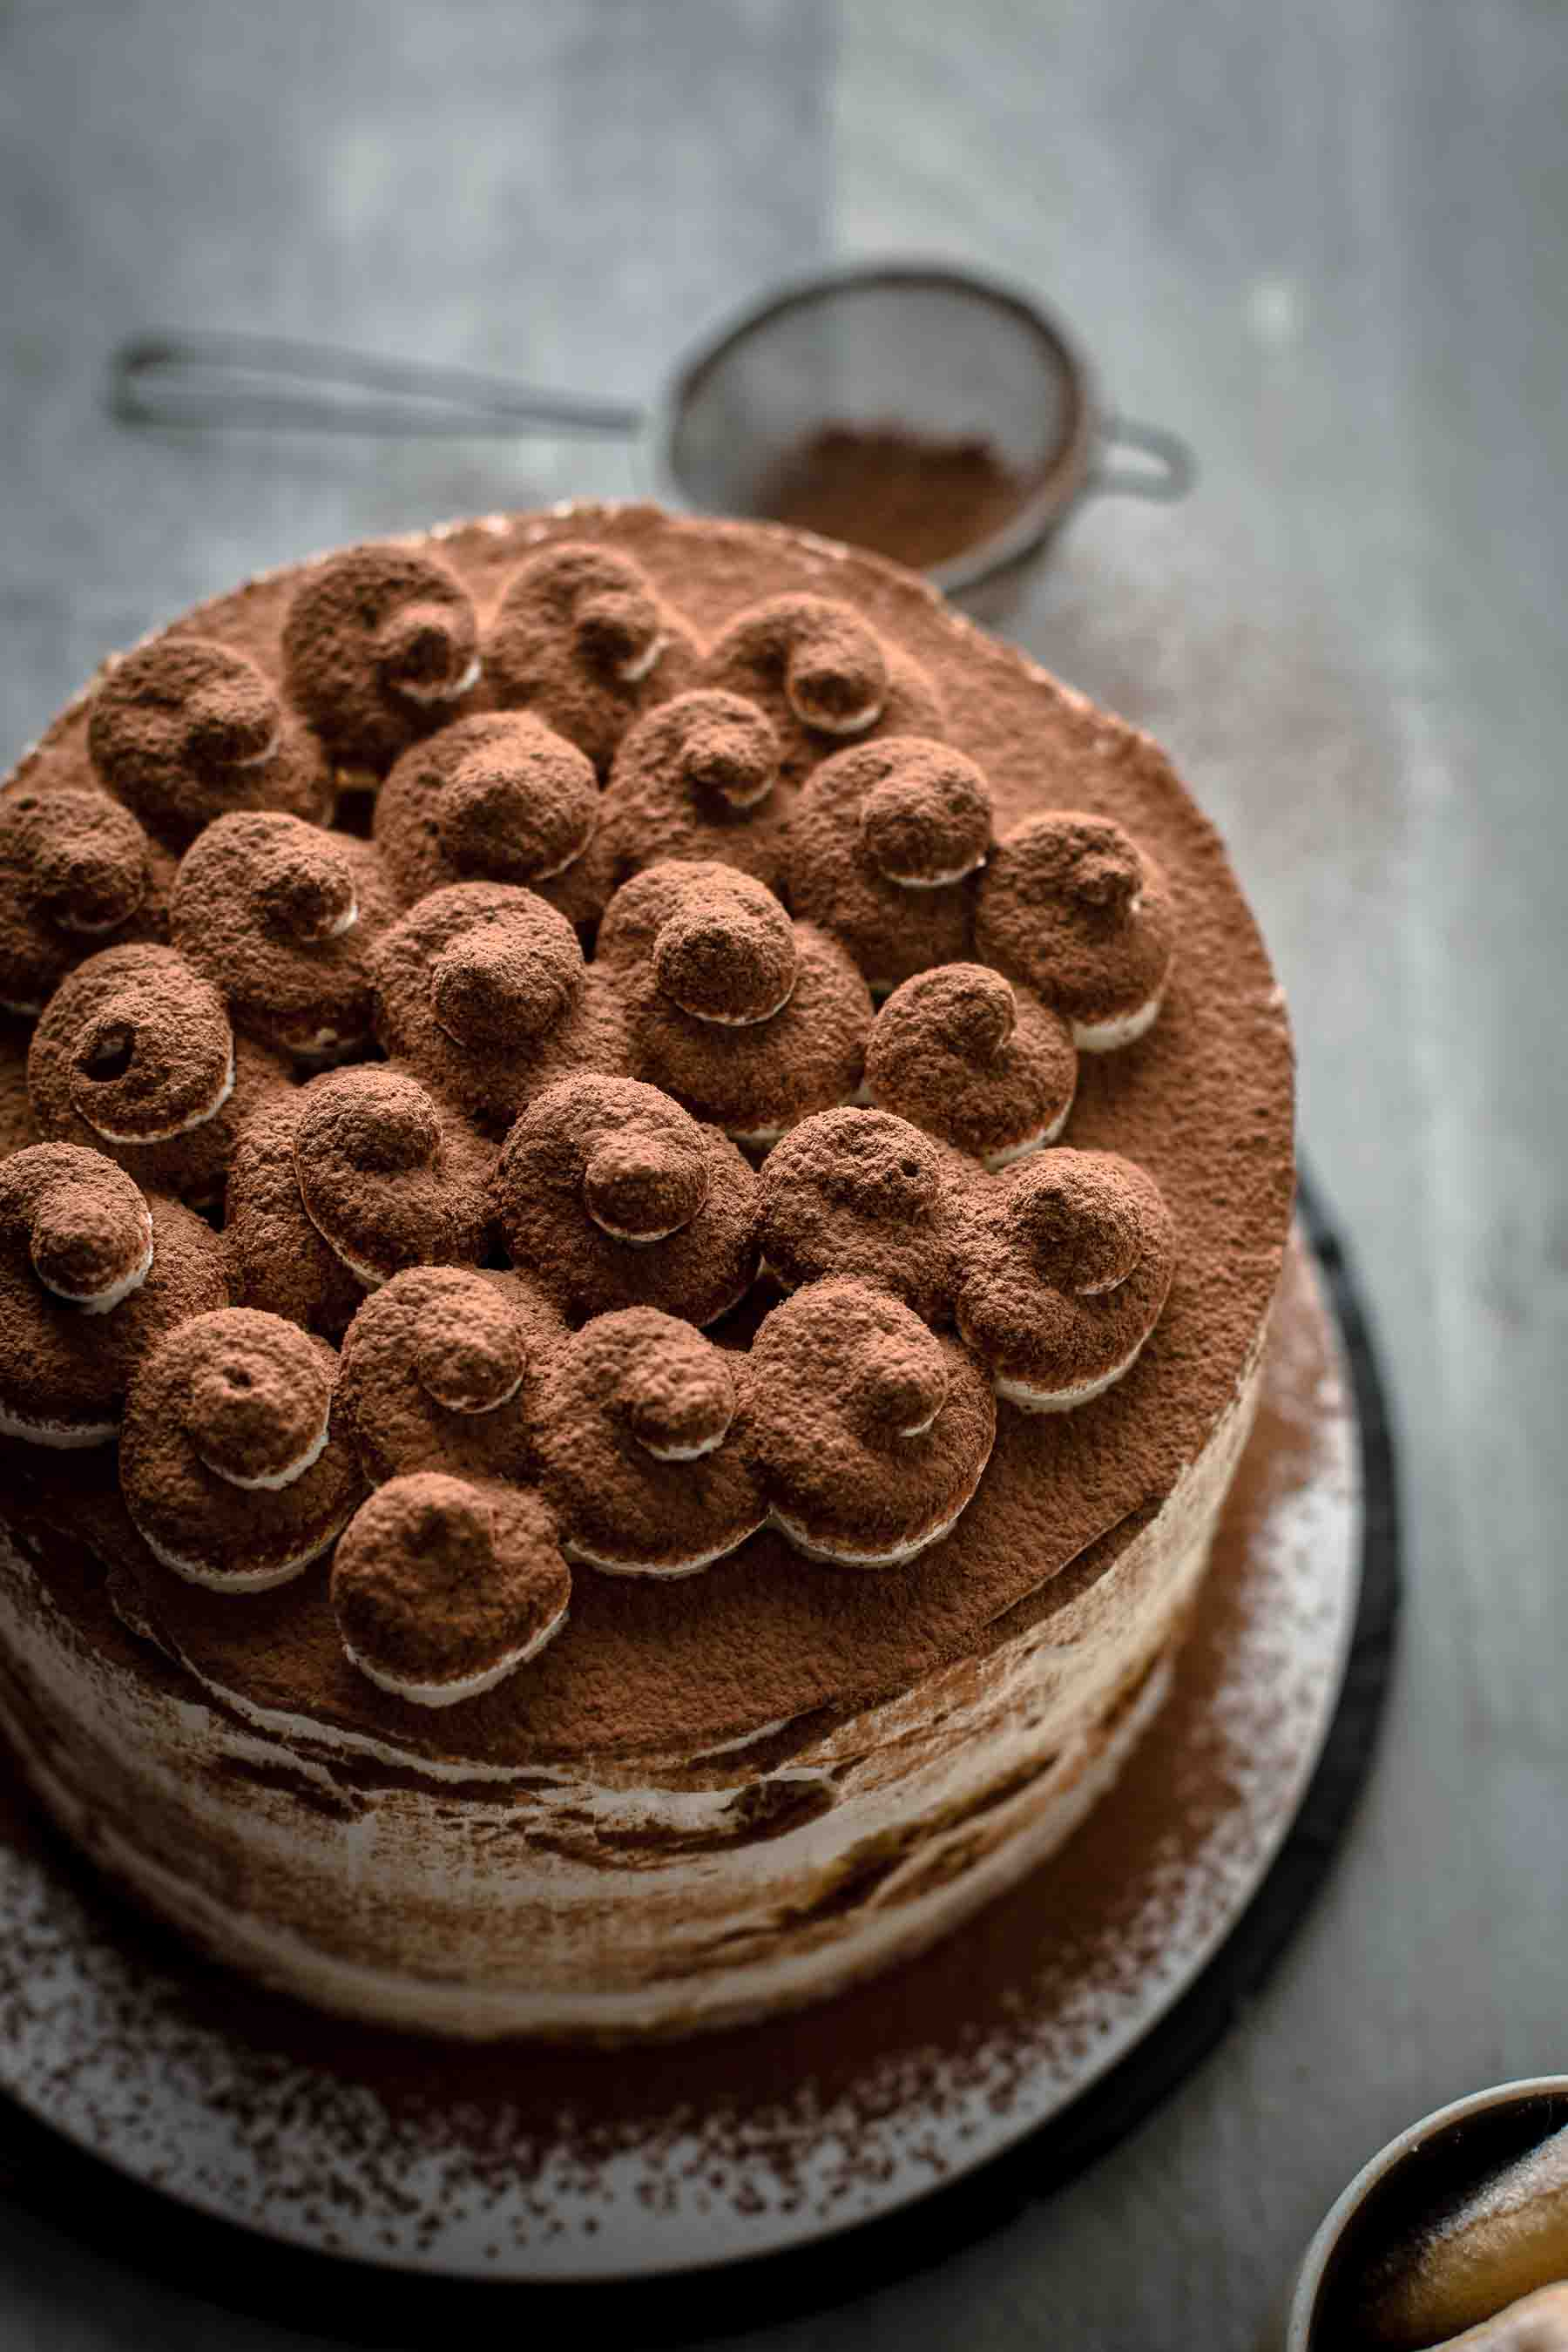 Cocoa powder dusted Tiramisu Cake